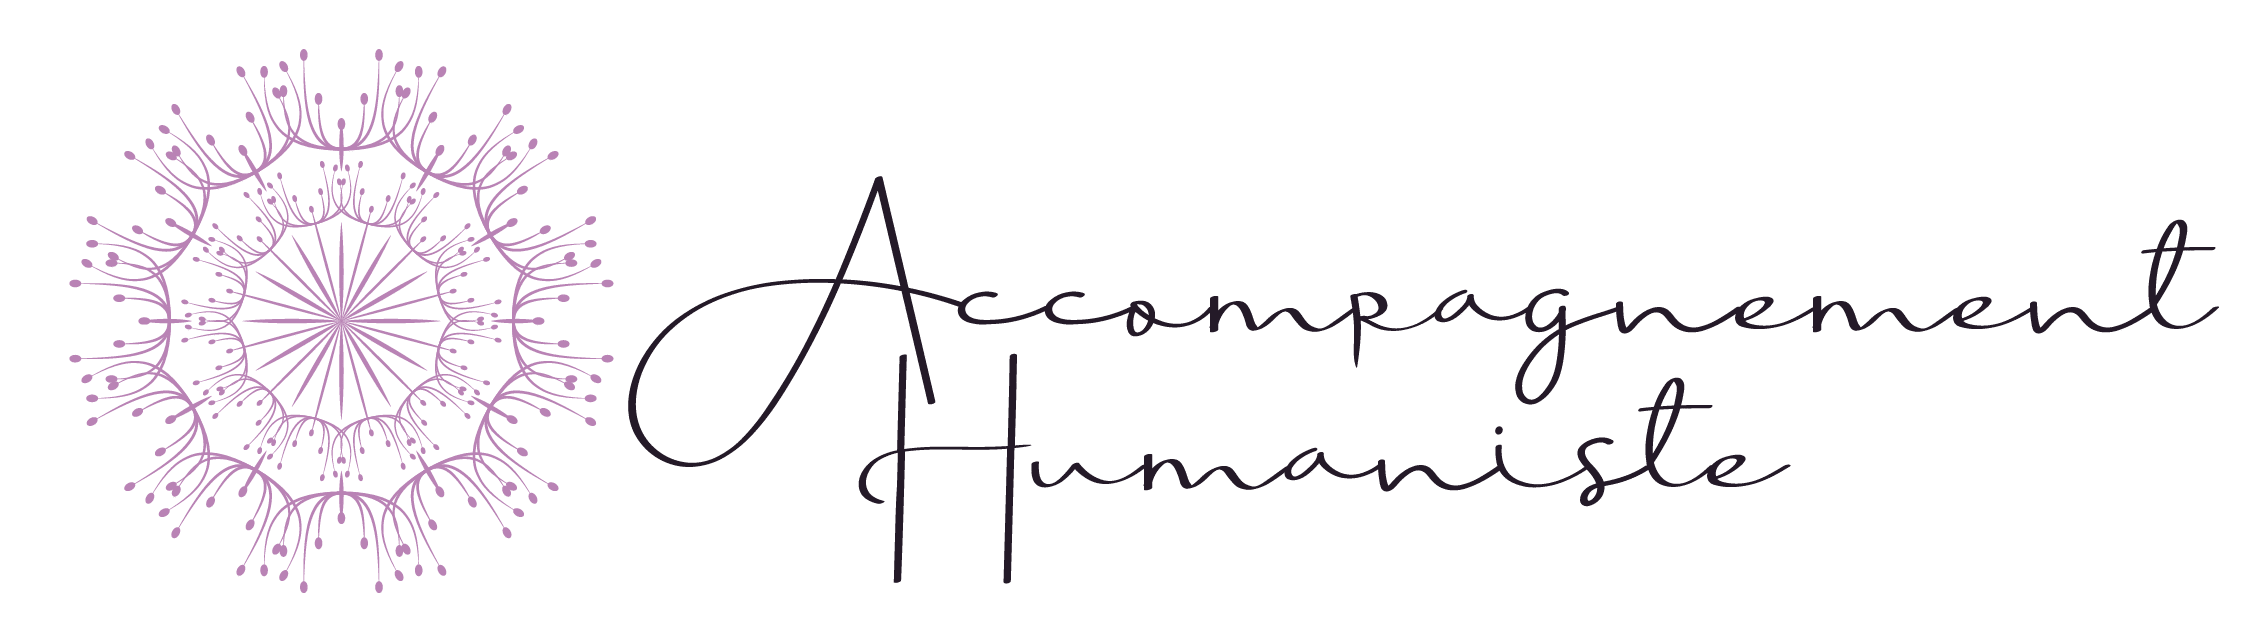 Accompagnement Humaniste